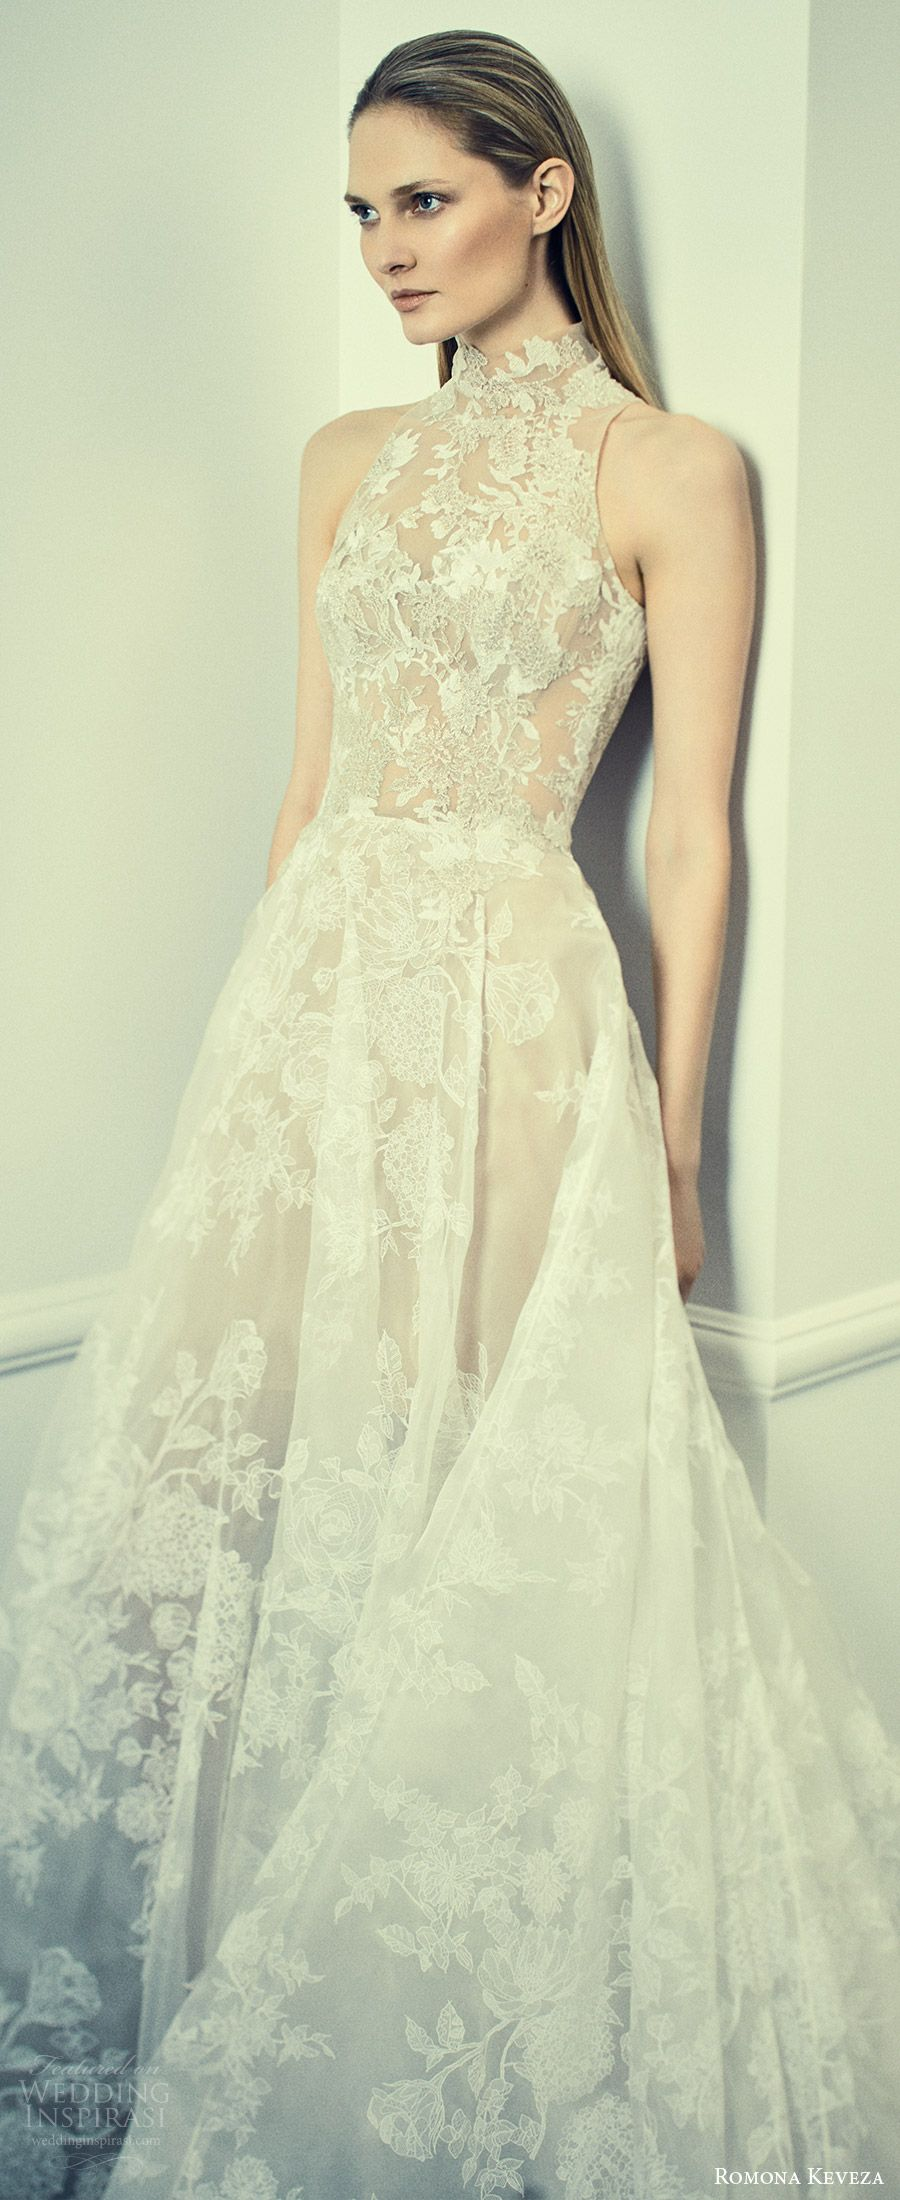 Romona keveza collection spring wedding dresses cathedral